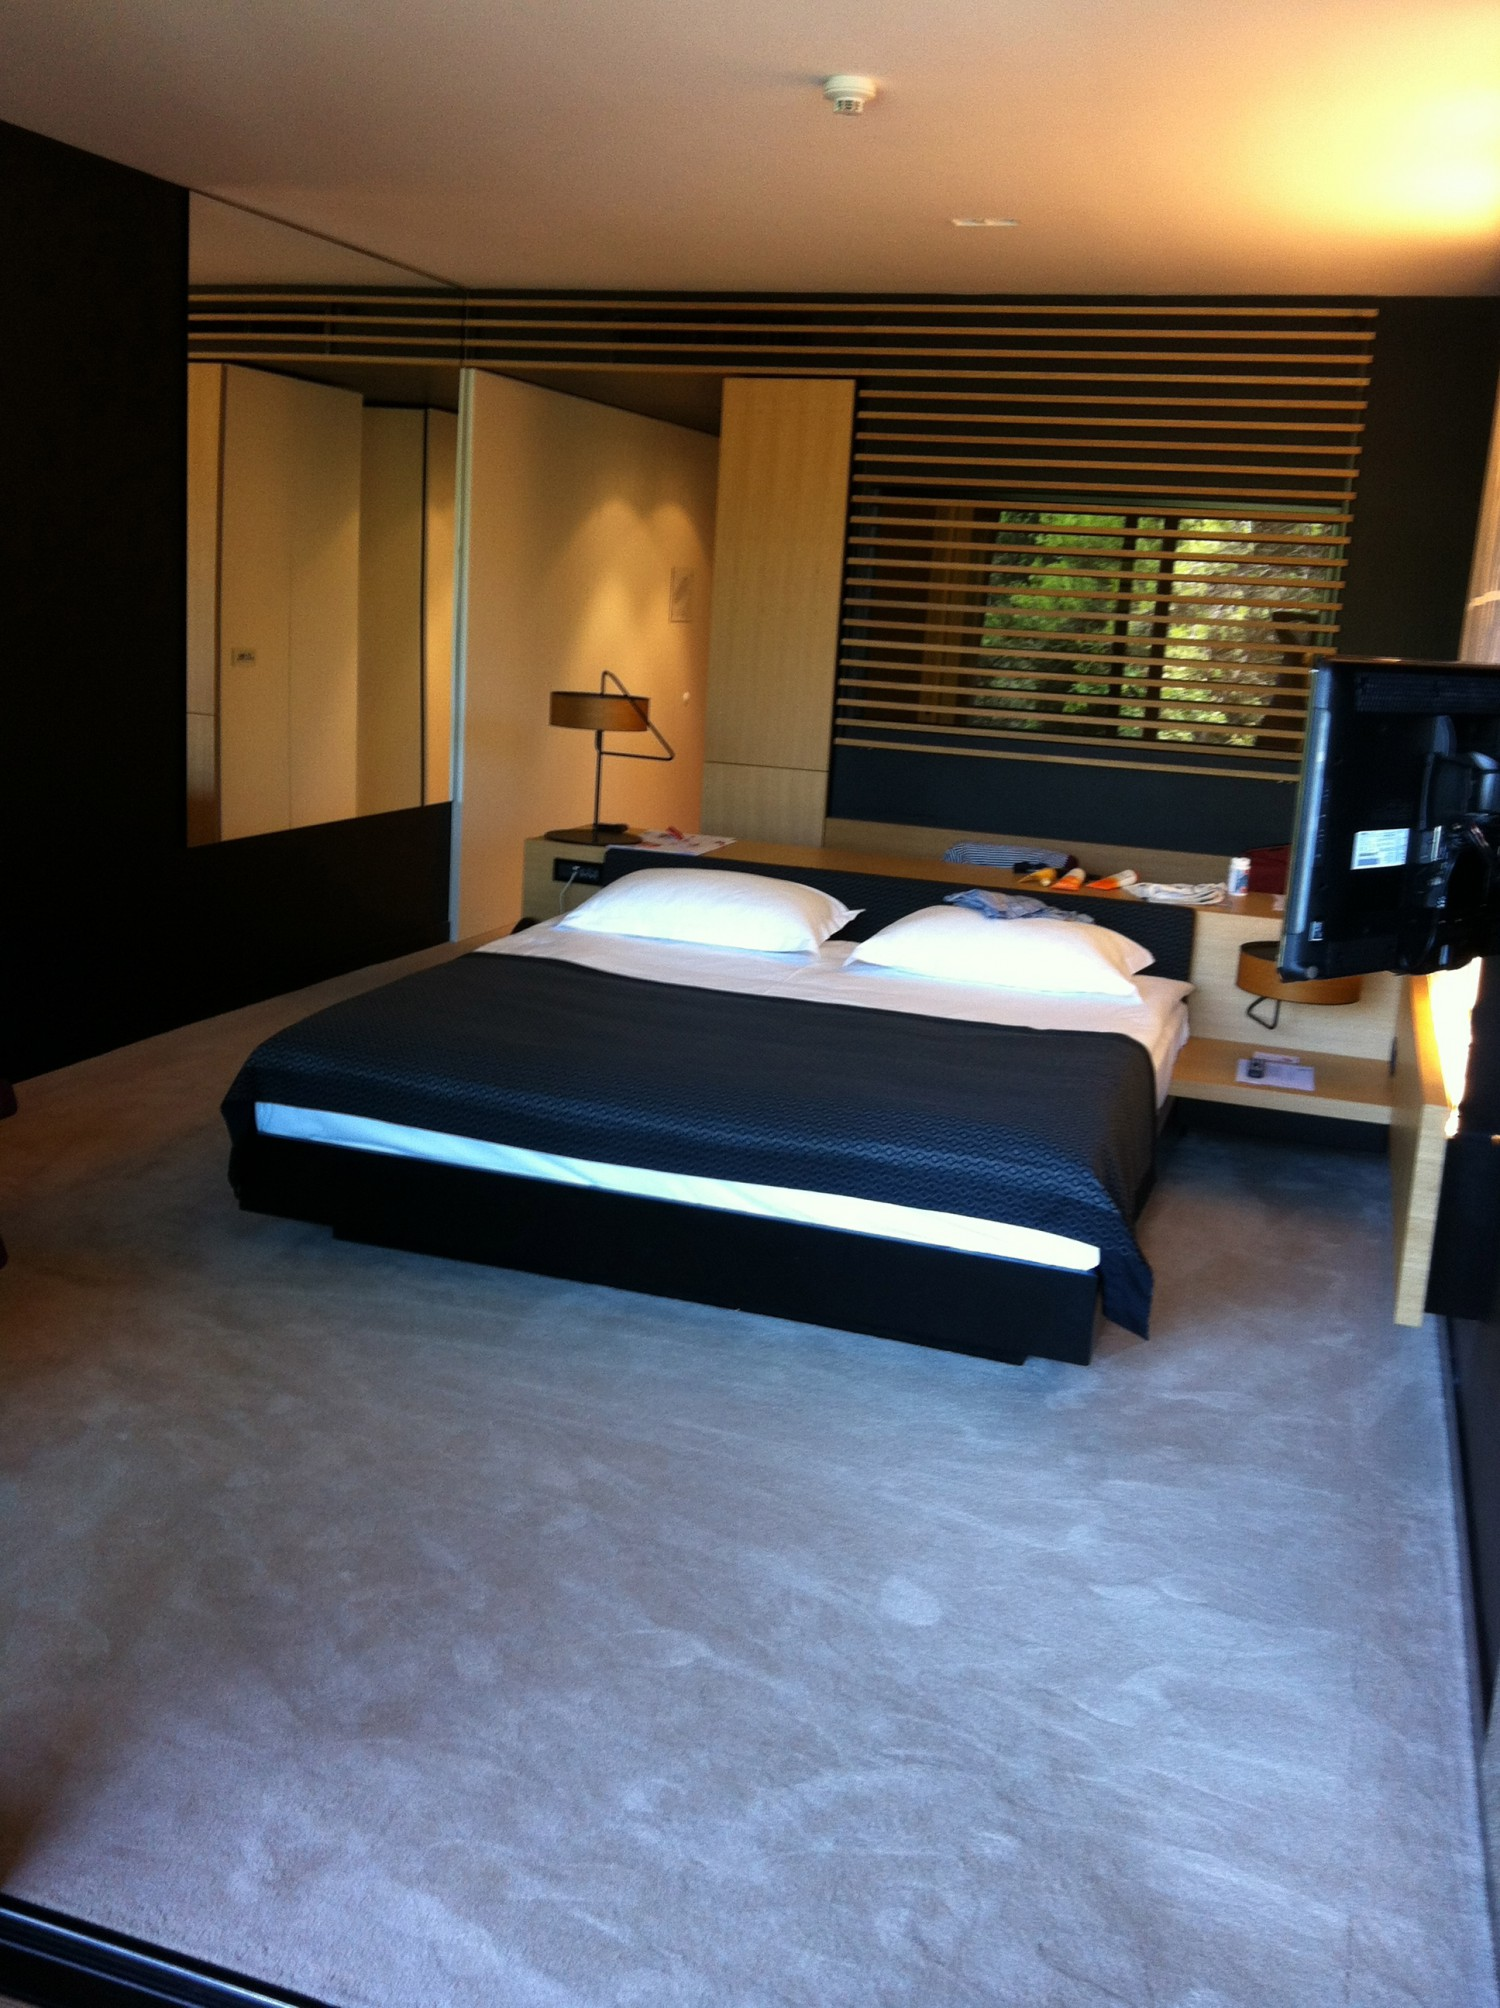 Hotel lone rovinj croatia 5 star modern design for 20 room hotel design